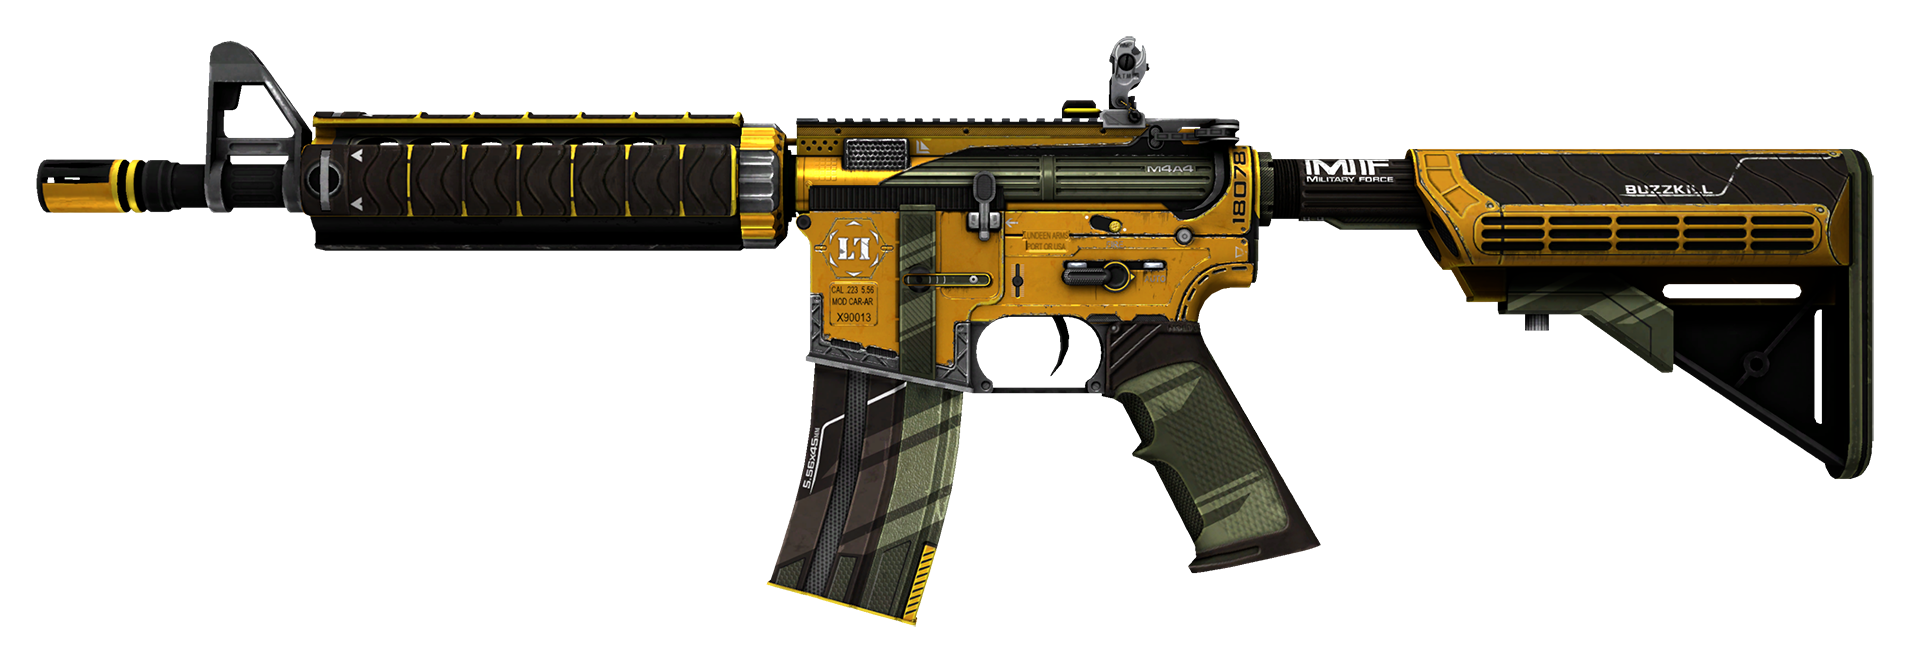 M4A4 Buzz Kill Large Rendering